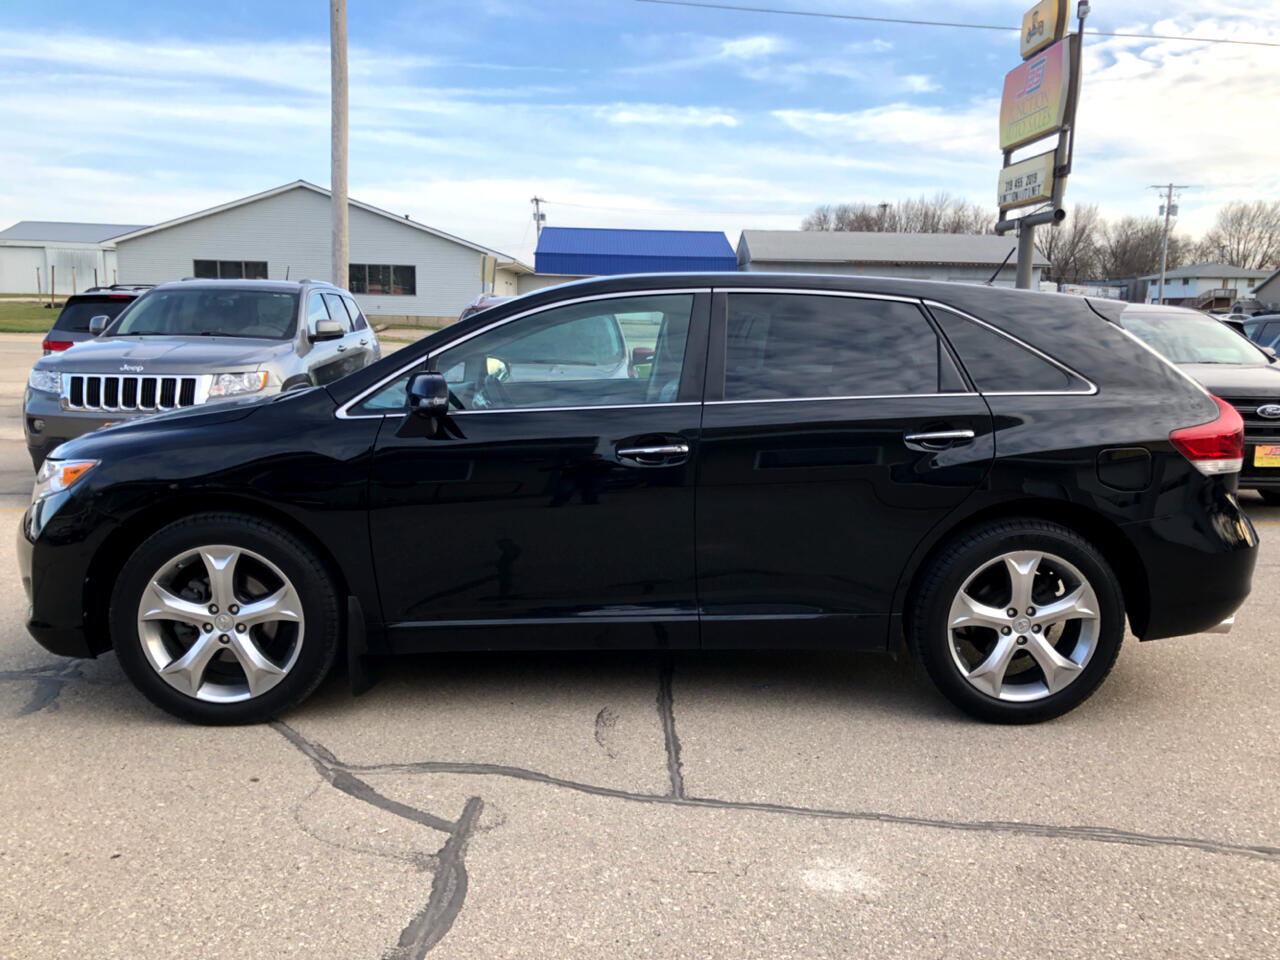 2014 Toyota Venza 4dr Wgn I4 FWD XLE (Natl)